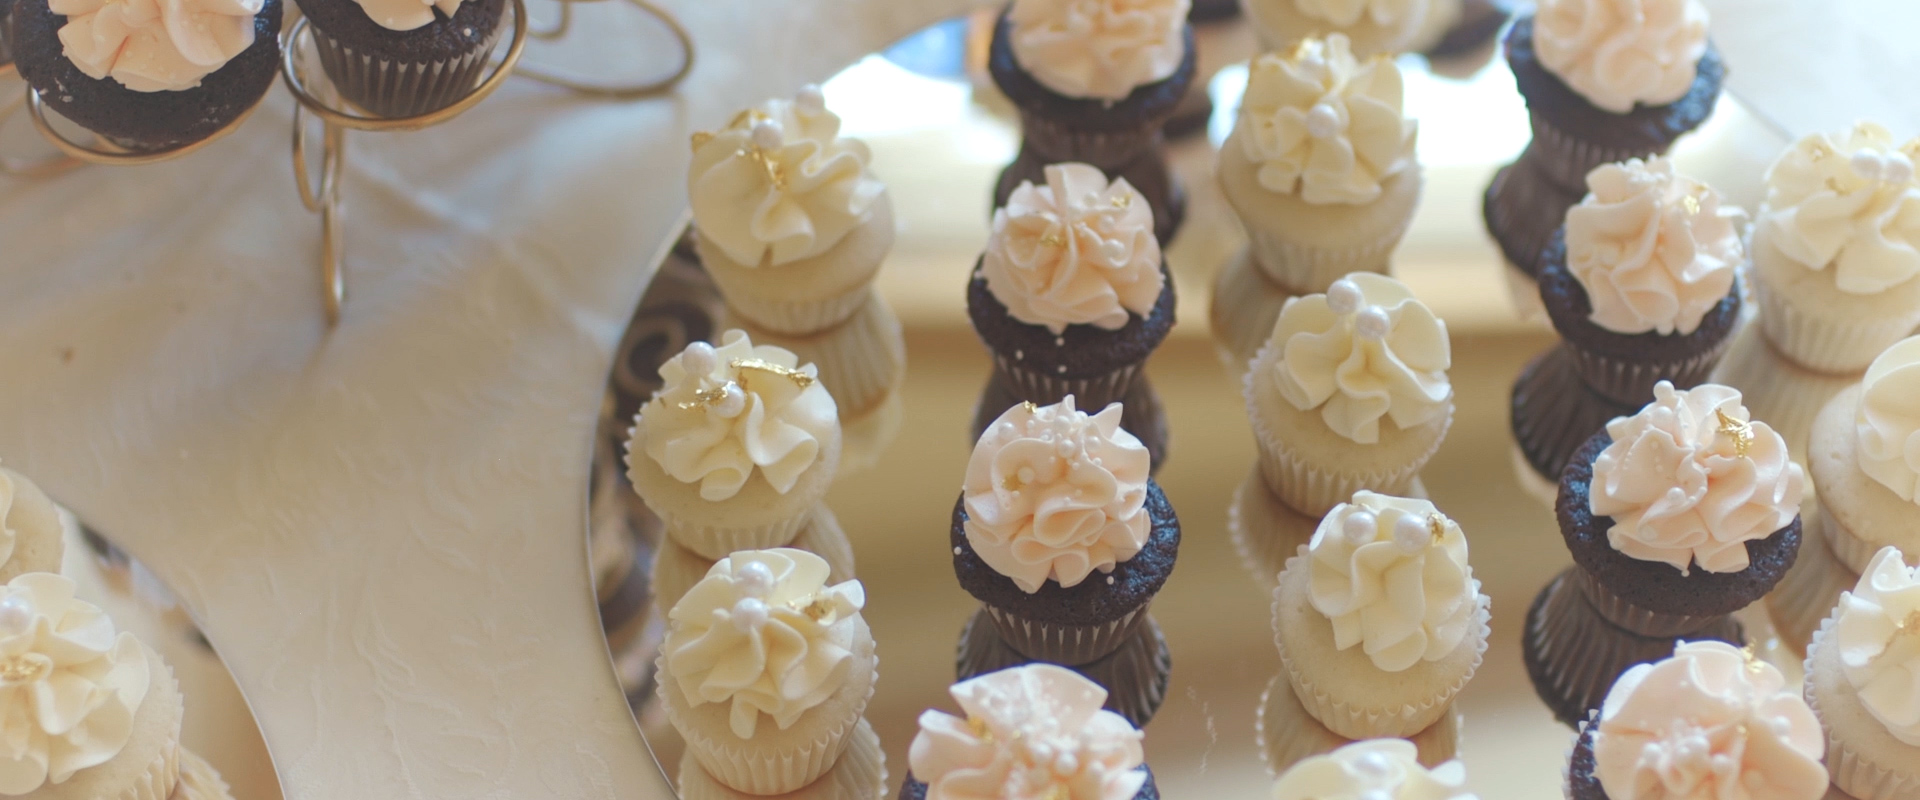 An image of pastries at a wedding reception; taken from a Toronto Wedding Video